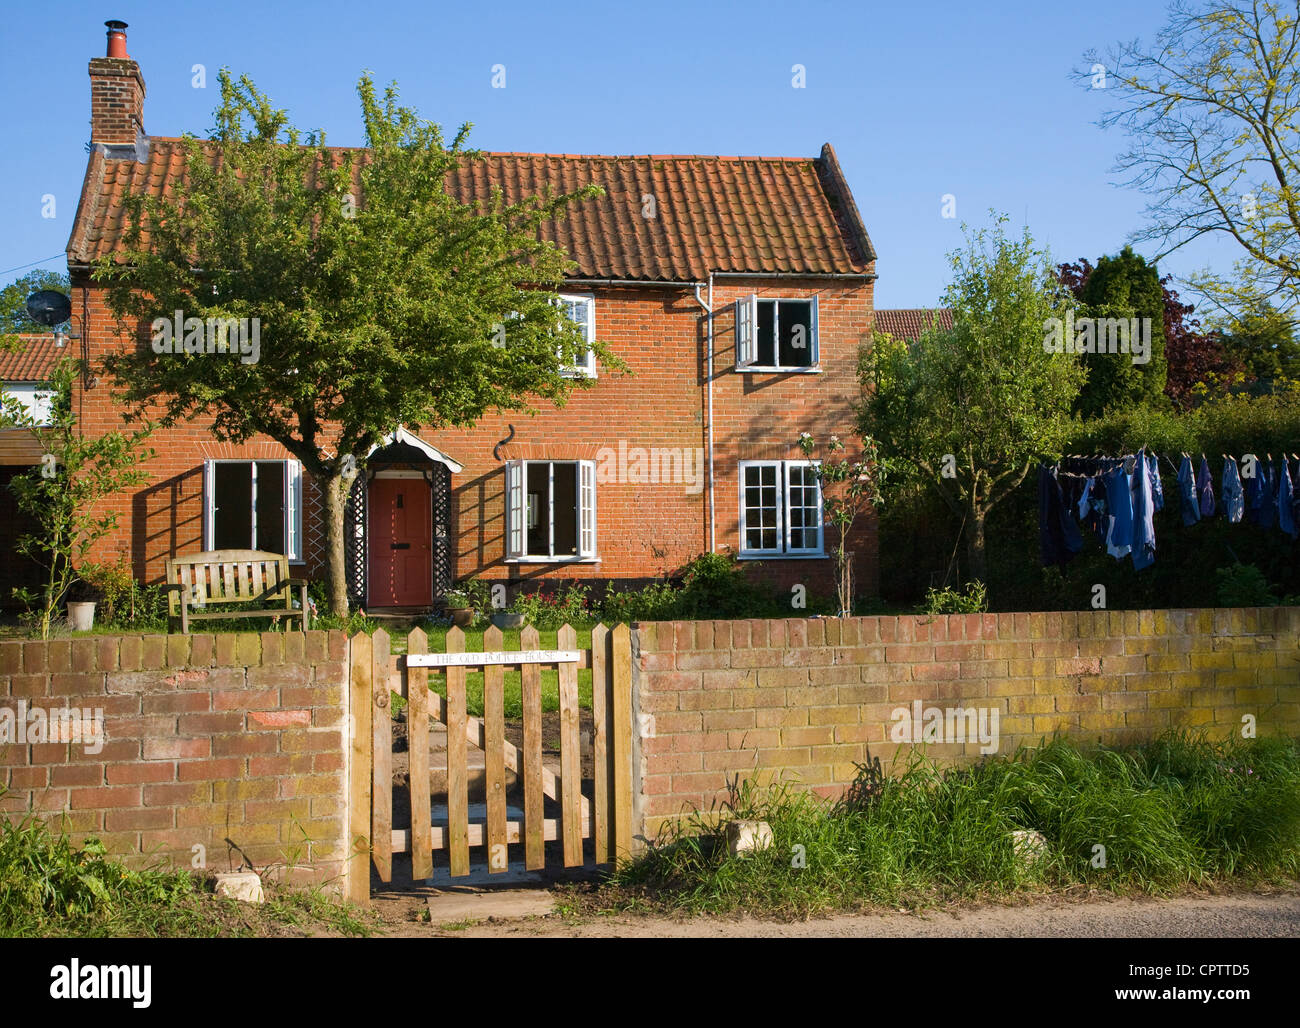 Property released ( photographer's home) detached house with garden wall and gate, Shottisham, Suffolk, England Stock Photo